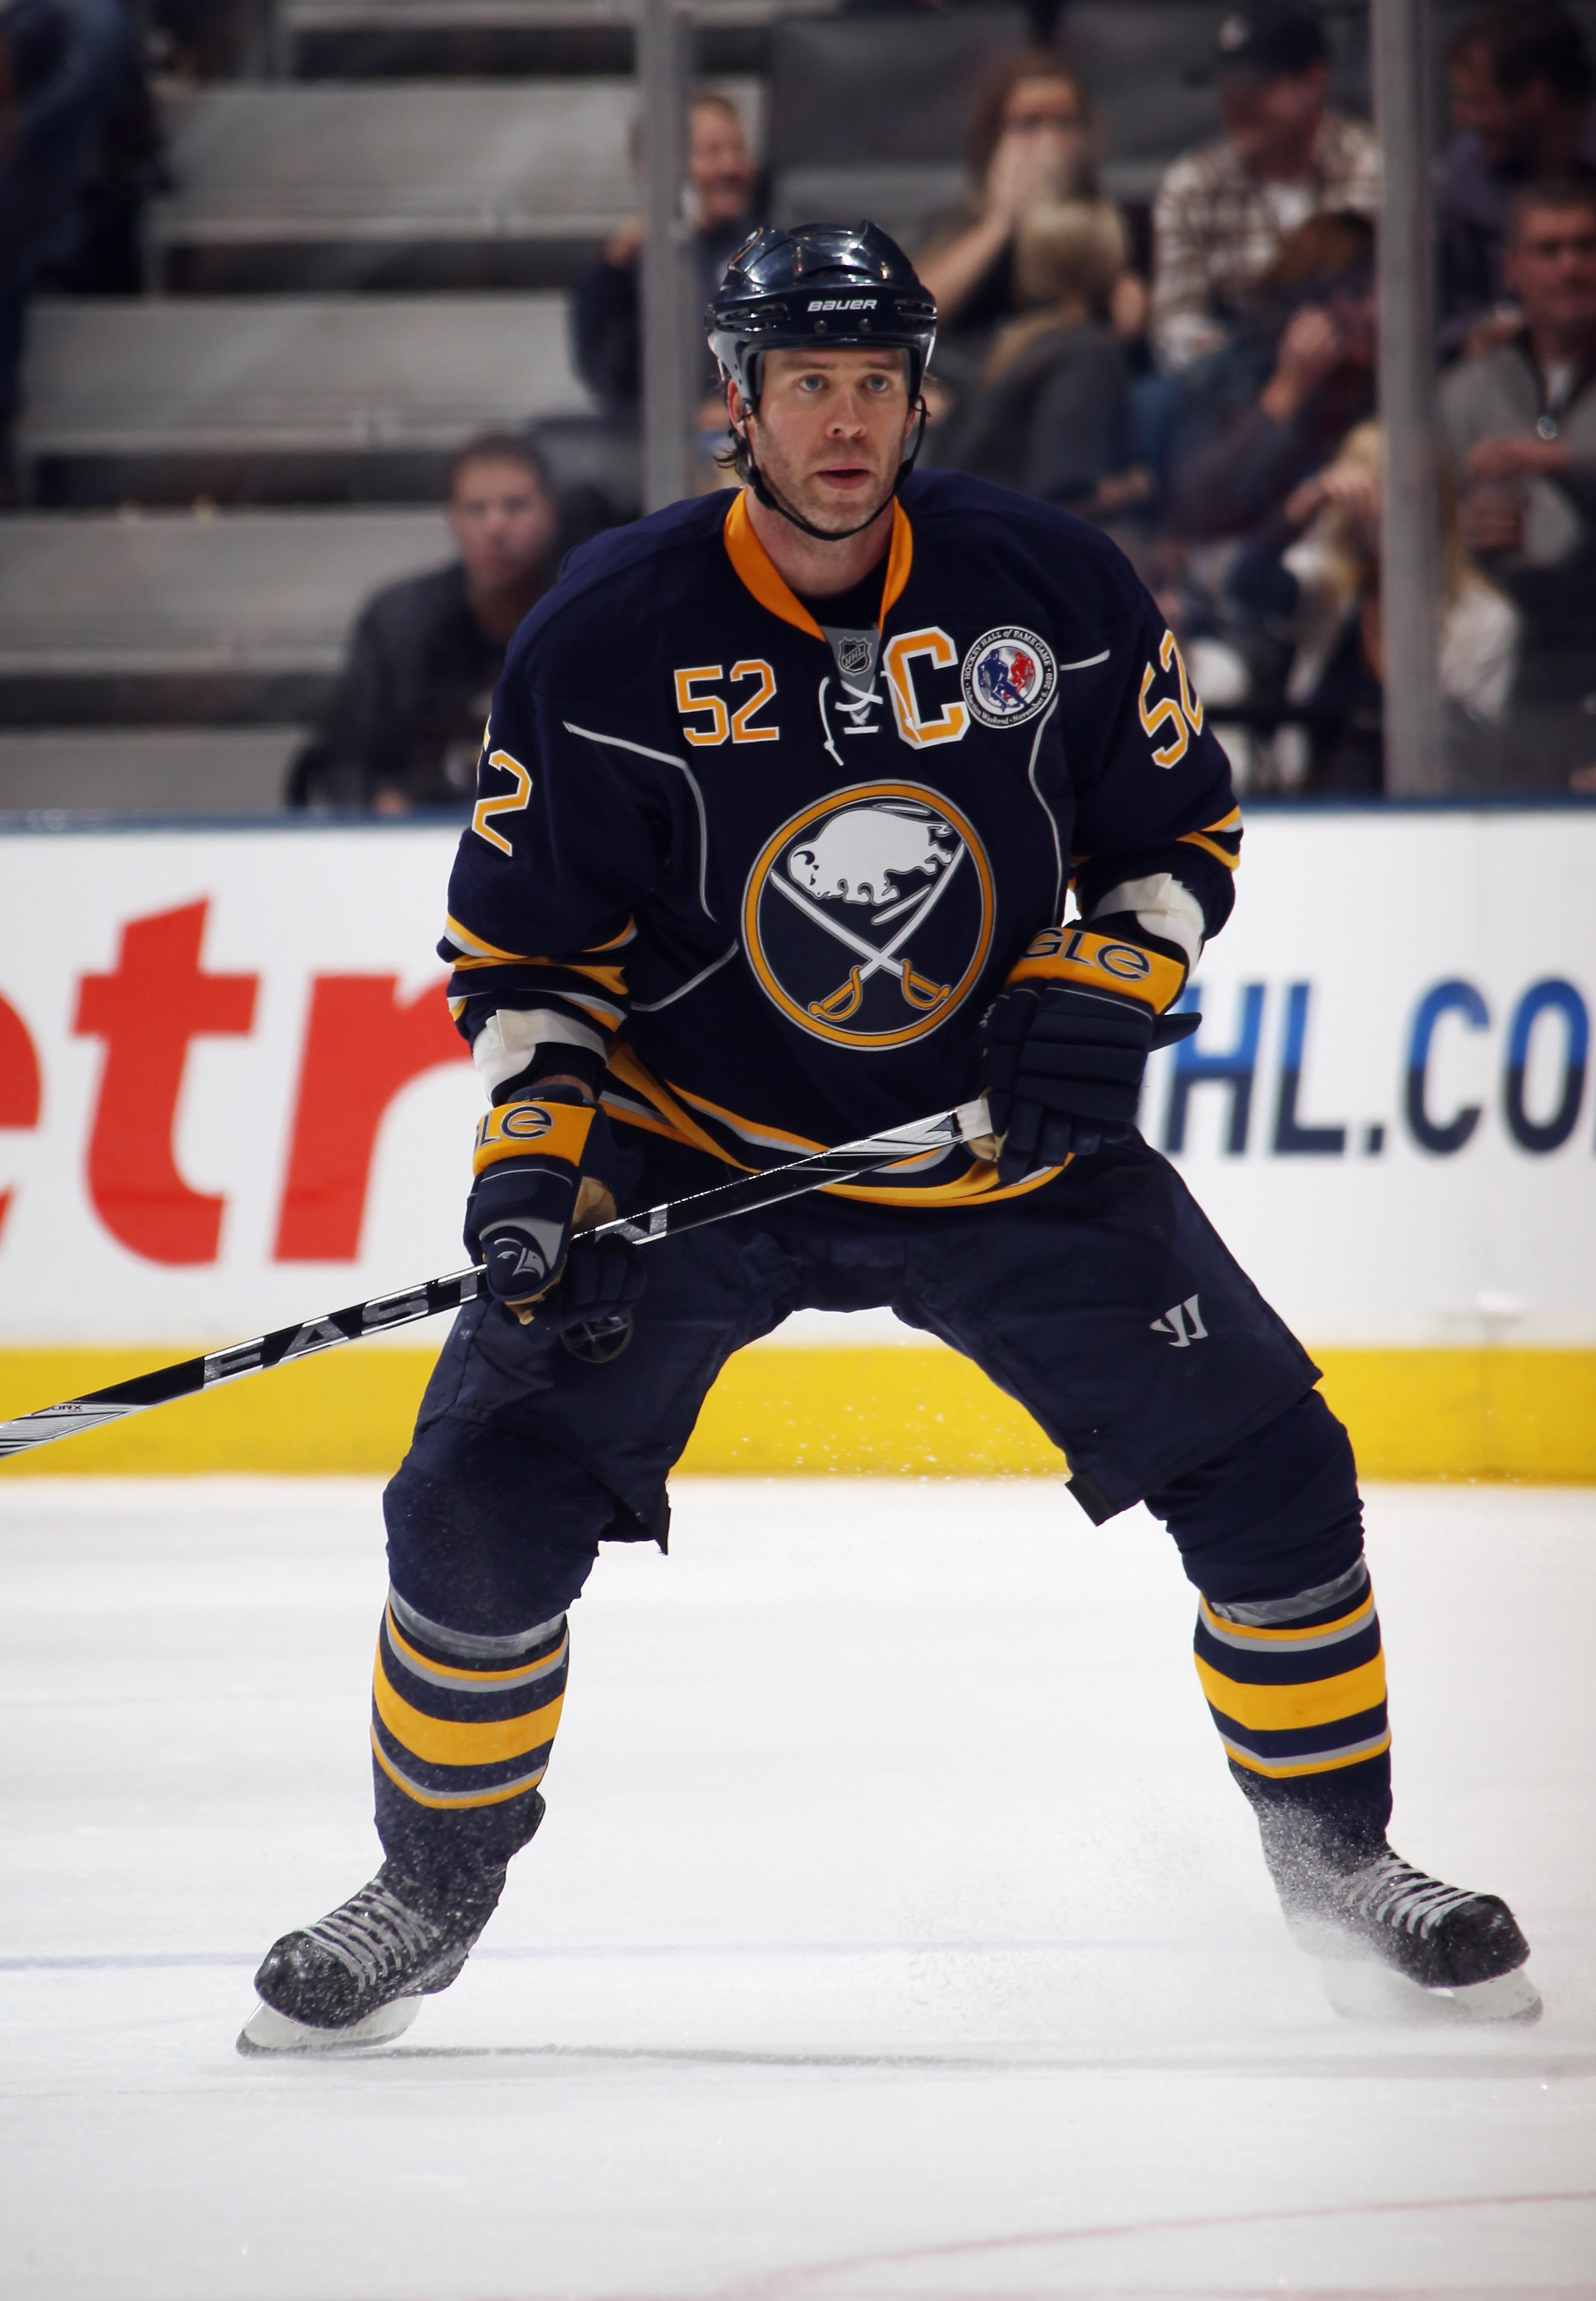 TORONTO, ON - NOVEMBER 06:  Craig Rivet #52 of the Buffalo Sabres skates against the Toronto Maple Leaf at the Air Canada Centre on November 6, 2010 in Toronto, Canada.  (Photo by Bruce Bennett/Getty Images)